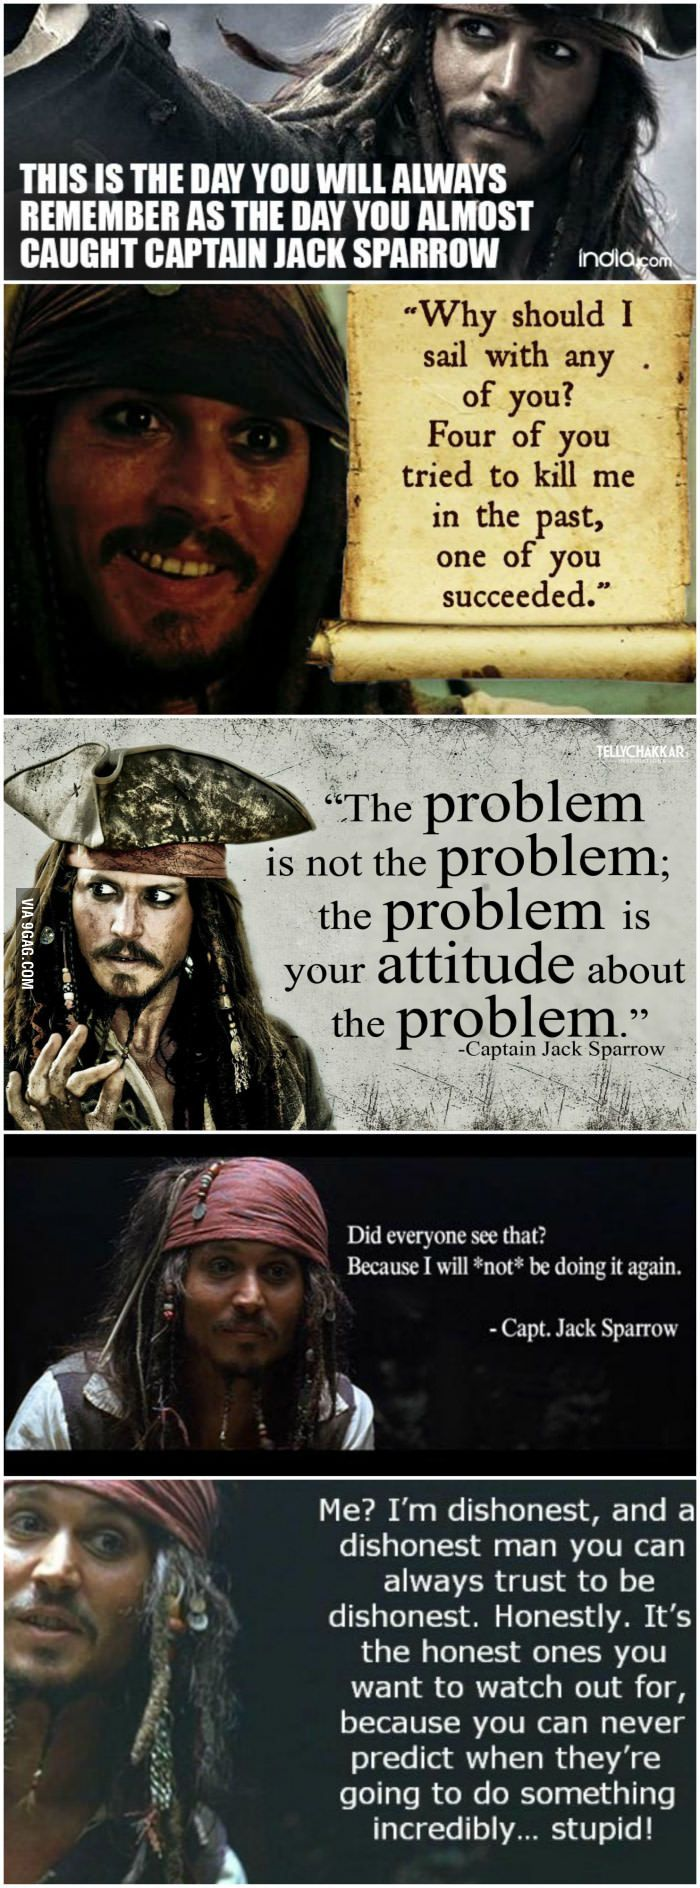 Some awesome Captain Jack Sparrow quotes to brighten your day! - 9GAG (Favorite Meme)